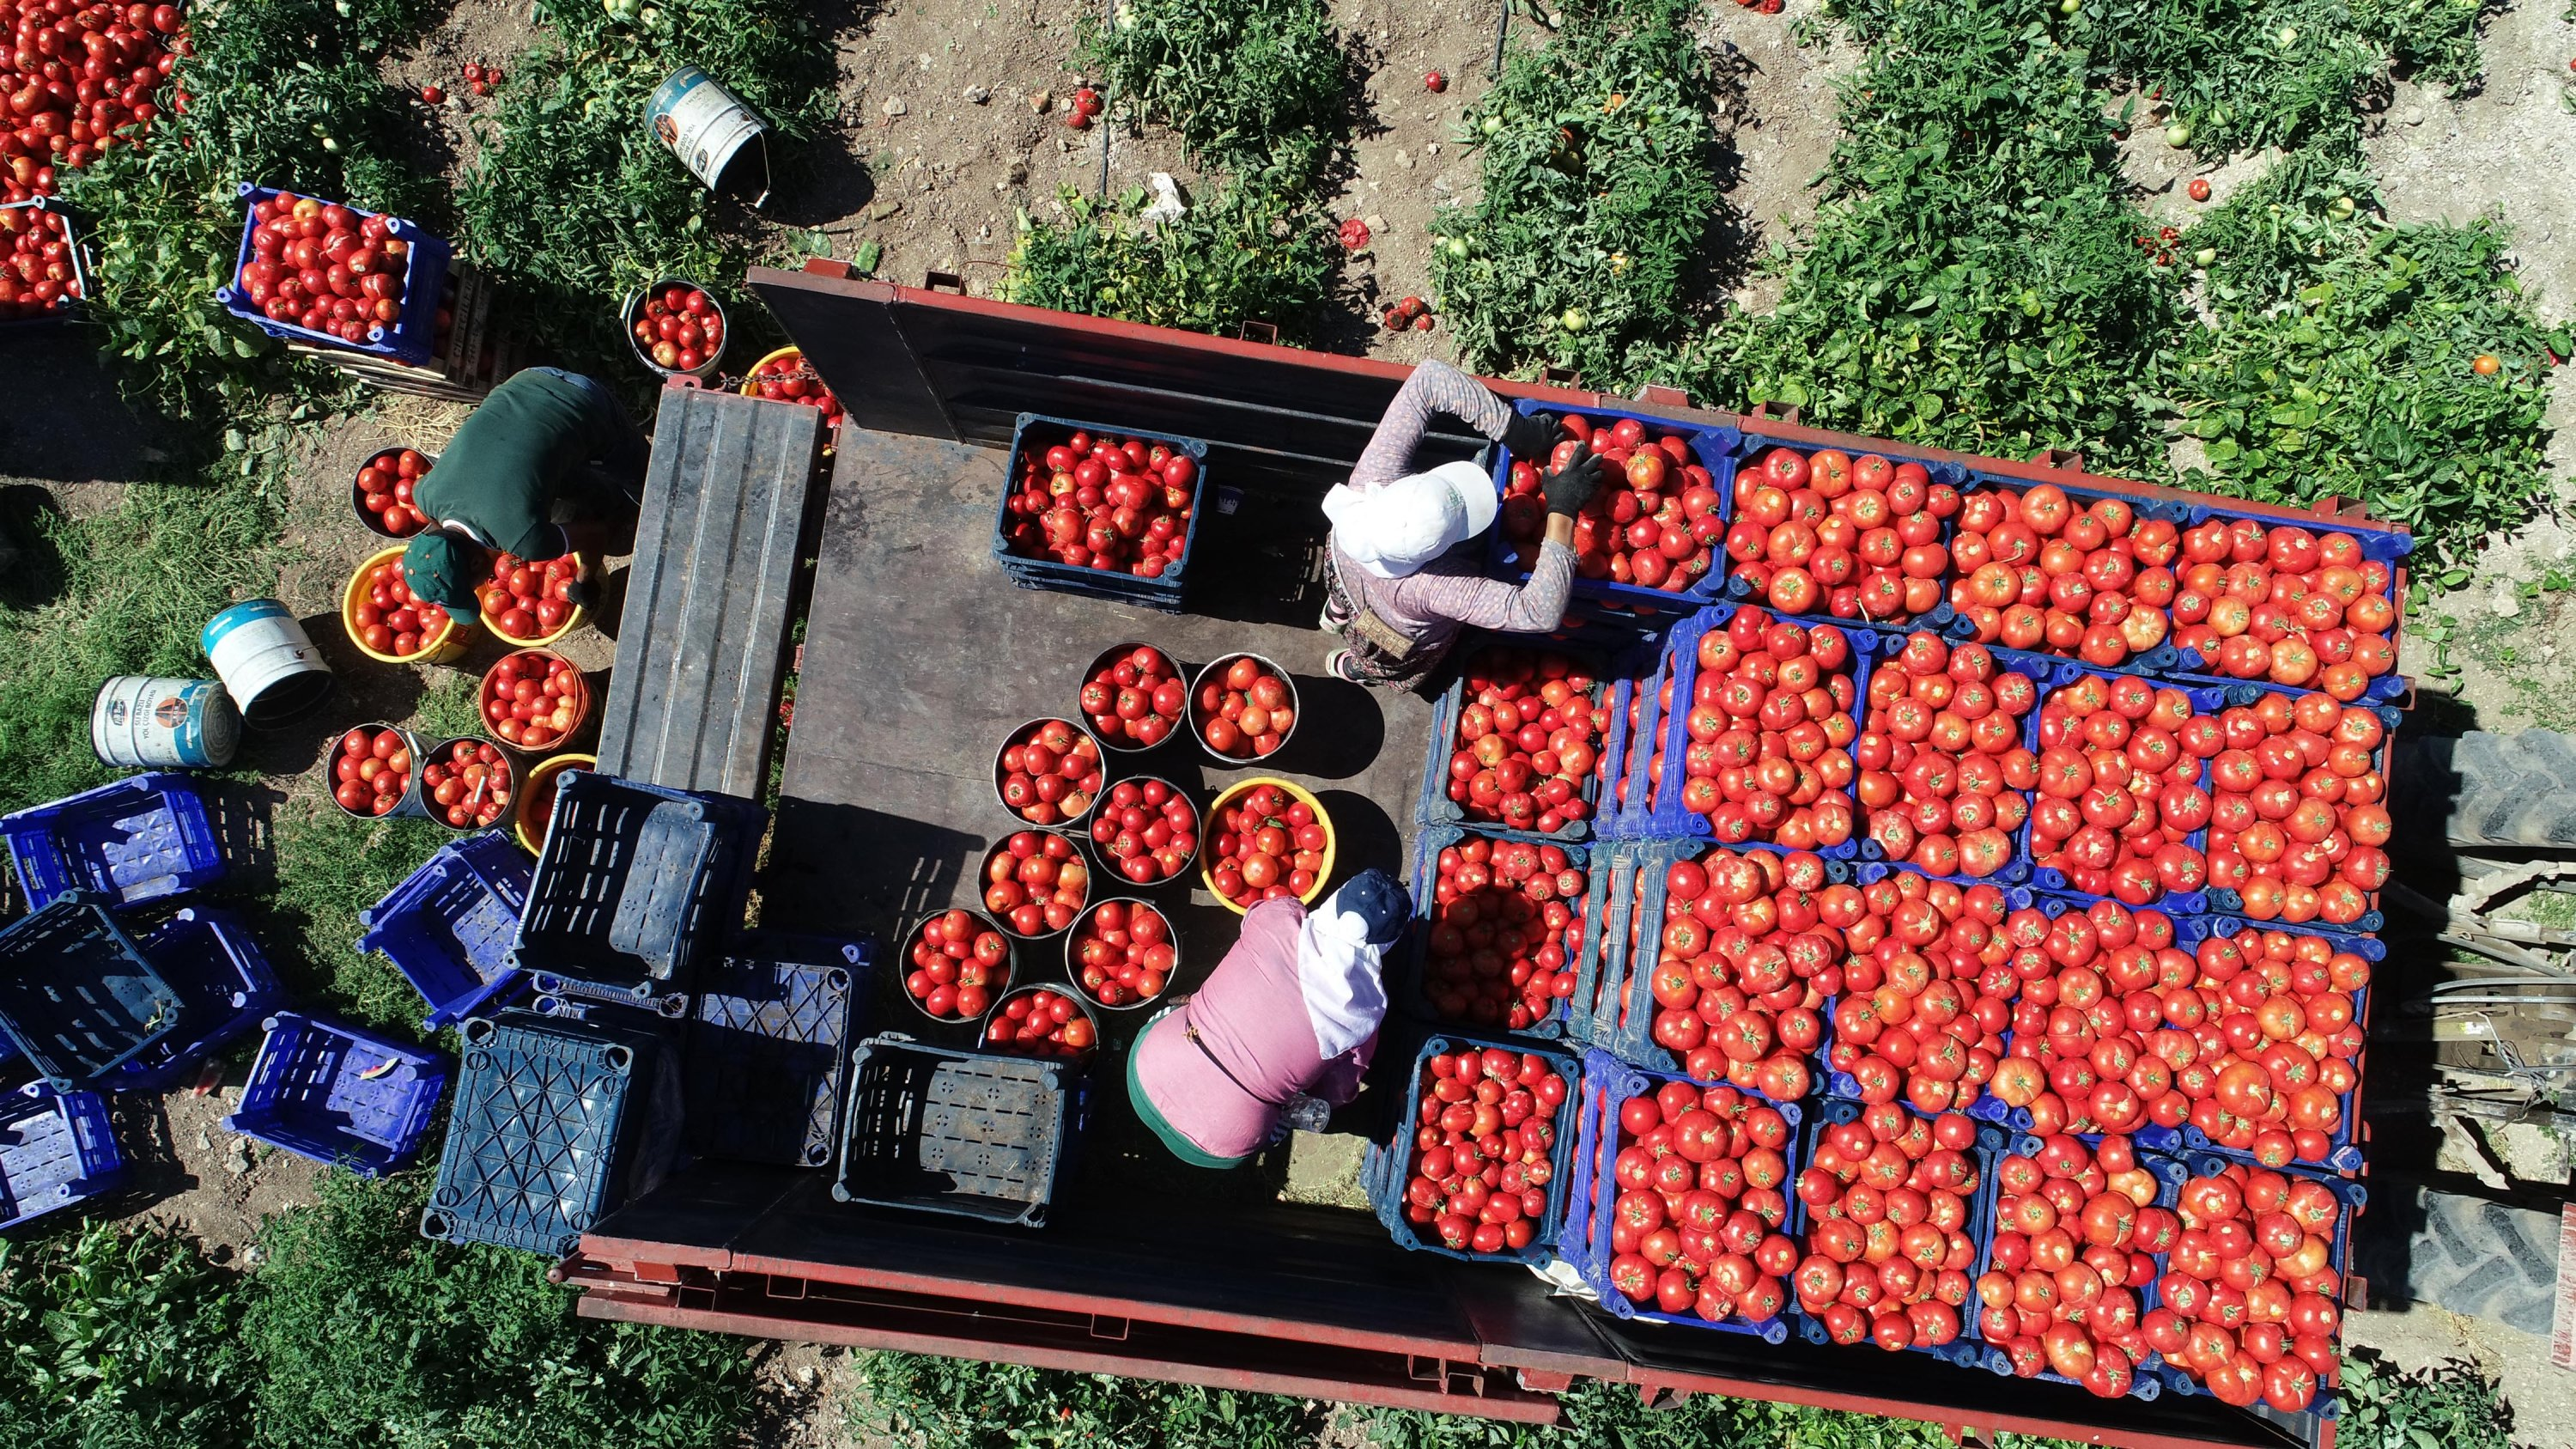 Crates of fresh tomatoes are packed in Çanakkale, western Turkey, Aug. 25, 2020. (DHA Photo)